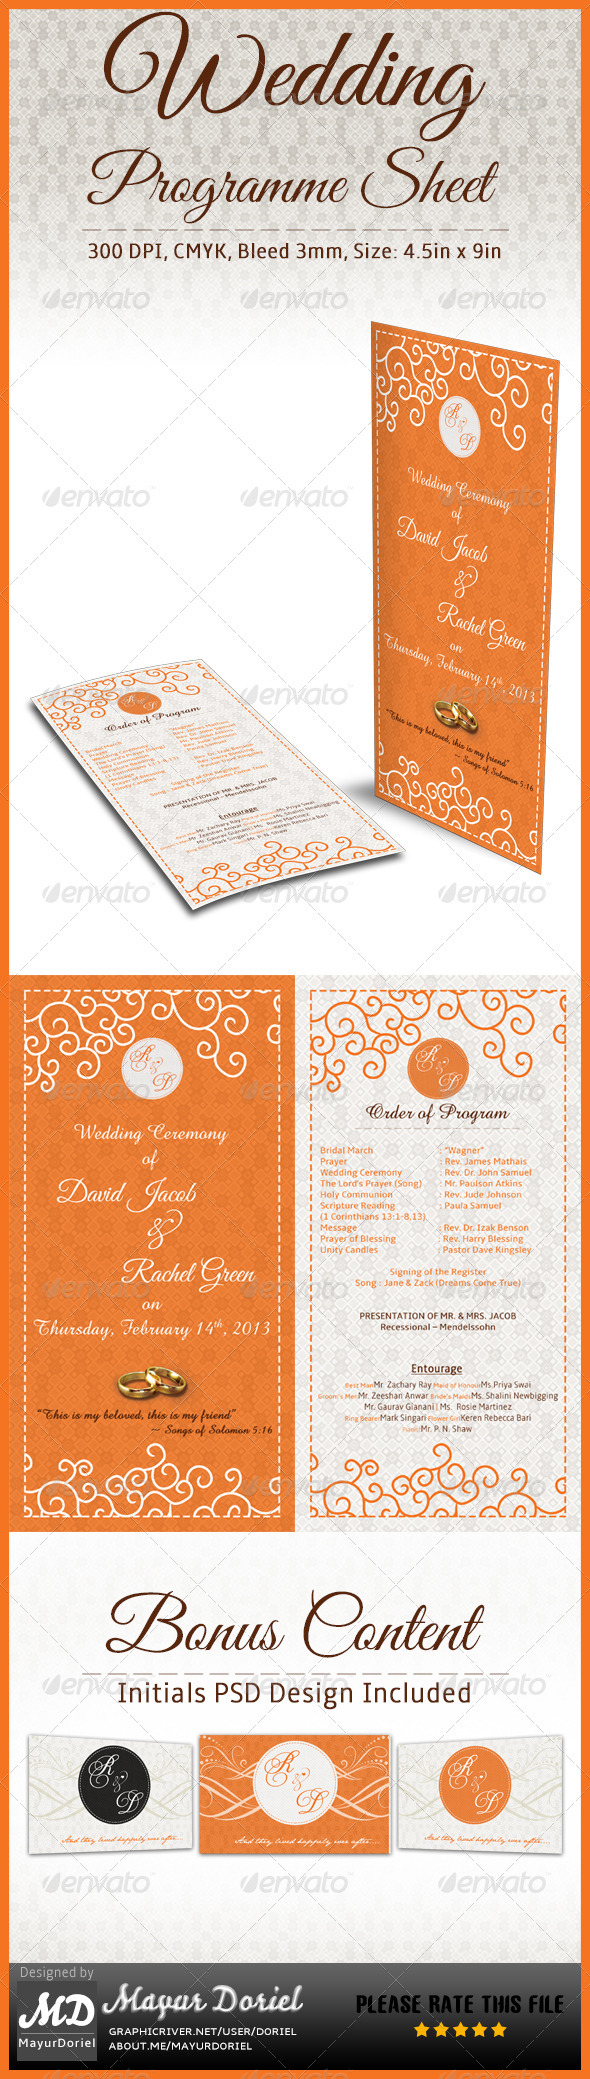 Wedding Programme Sheet - Schedule - Weddings Cards & Invites